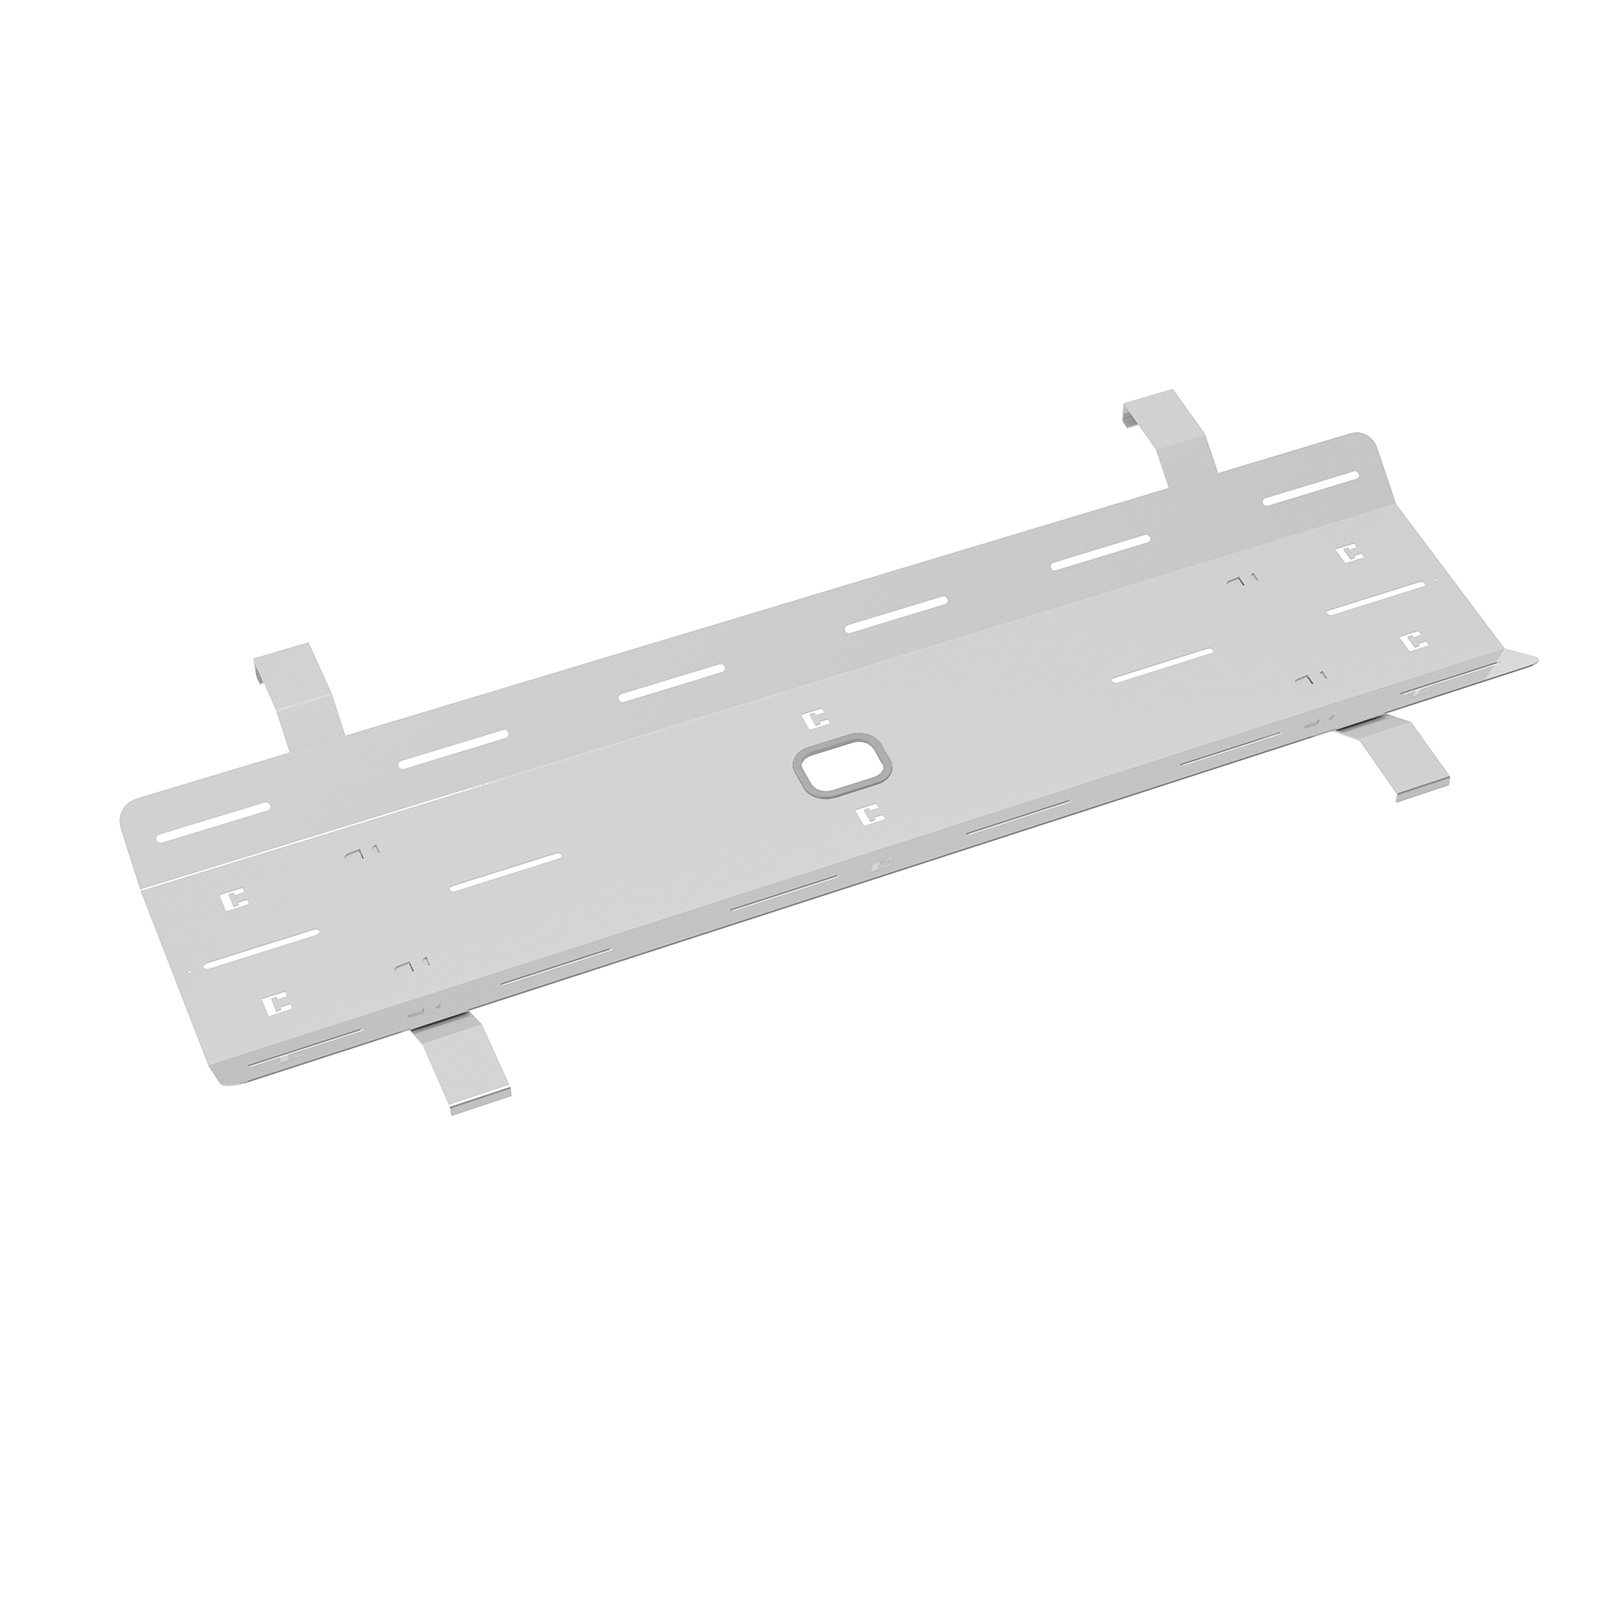 Cable Tidies Double cable tray for Adapt and Fuze desks